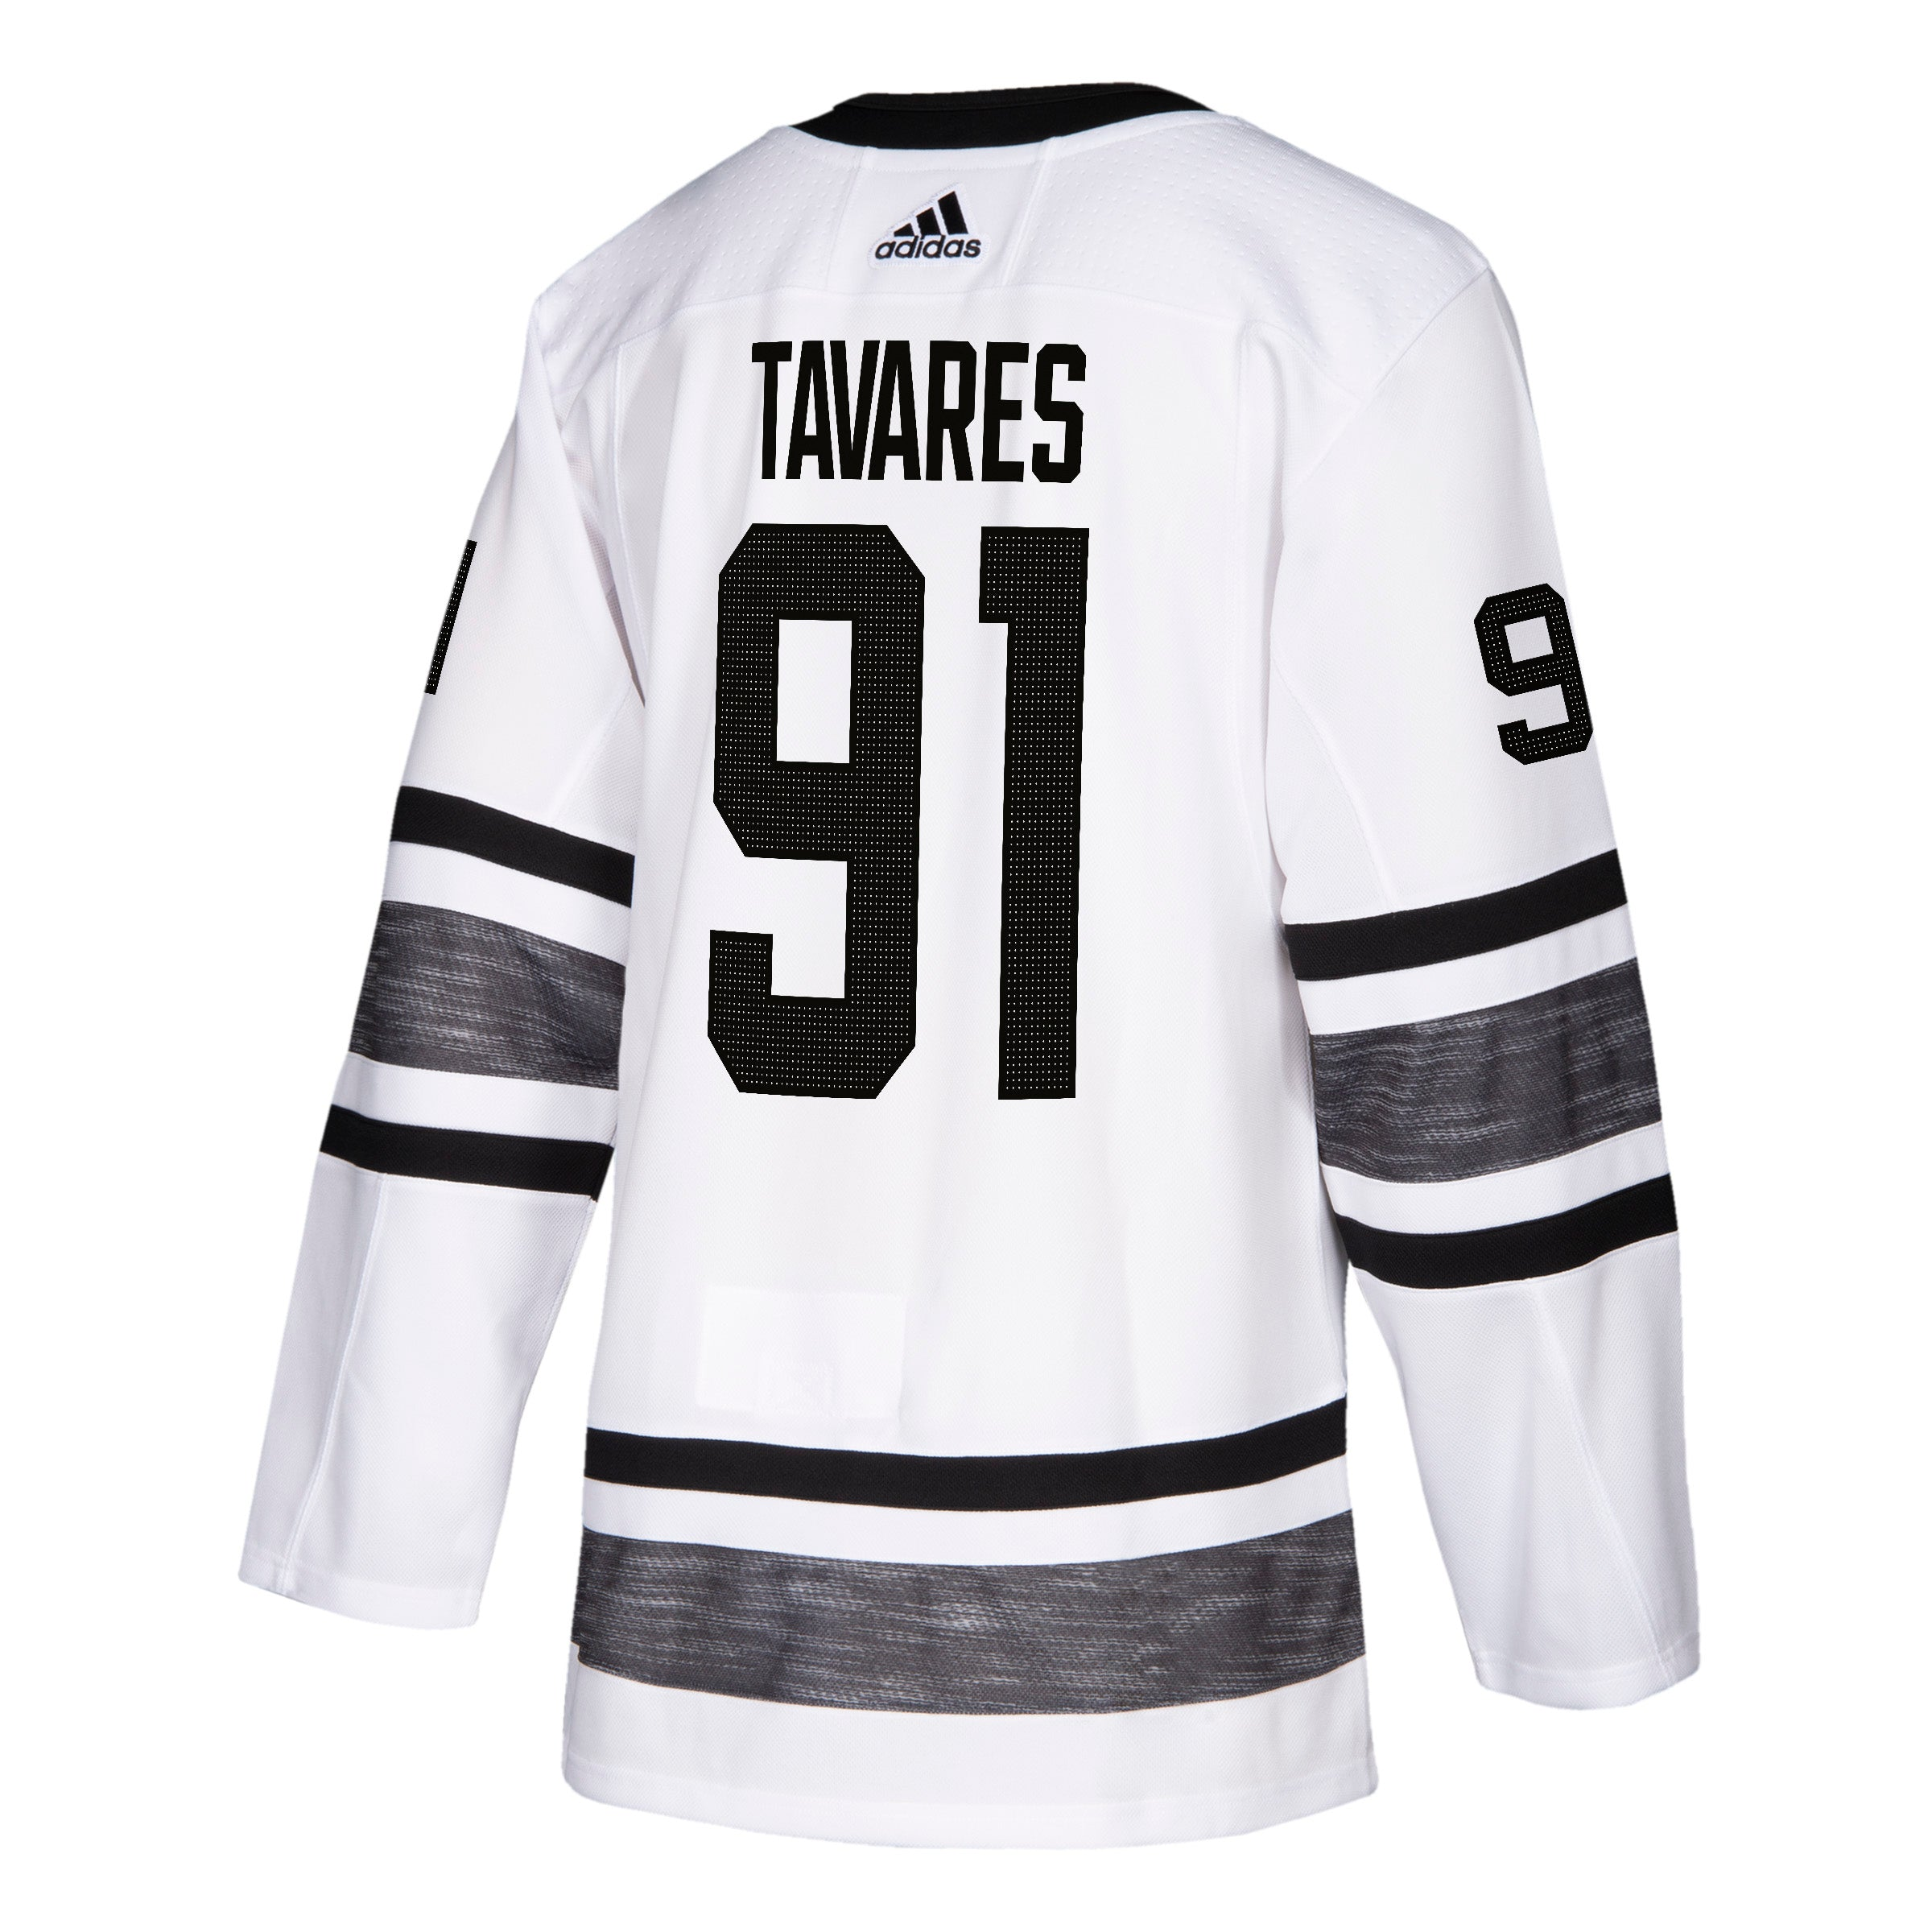 6f10fd5ede6 2019 NHL All Star Adidas Parley Tavares Jersey - White – shop.realsports